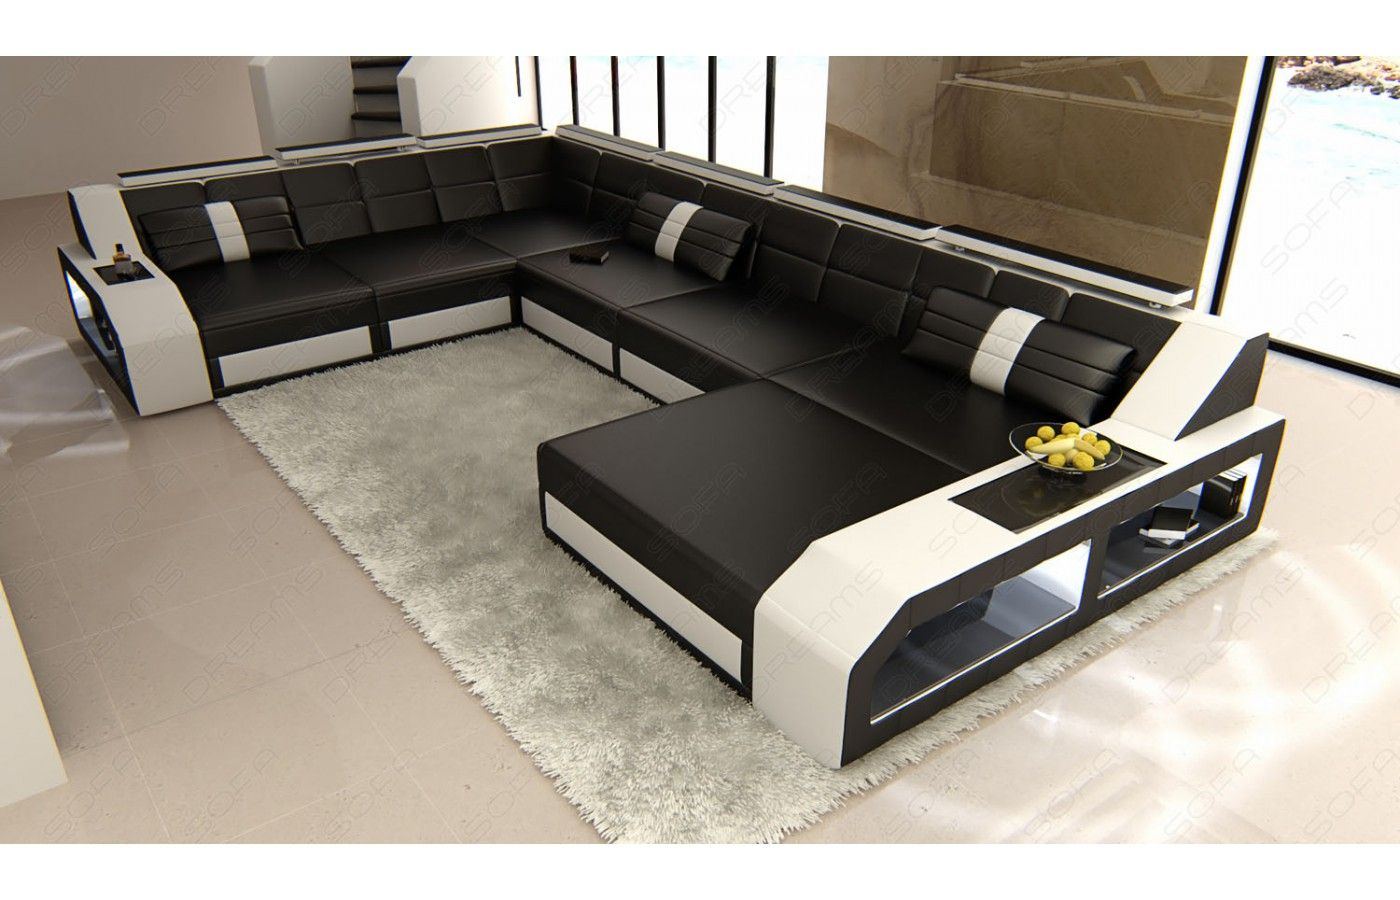 xxl wohnlandschaft matera leder xxl leder wohnlandschaft matera led pinterest sofa wohnen. Black Bedroom Furniture Sets. Home Design Ideas